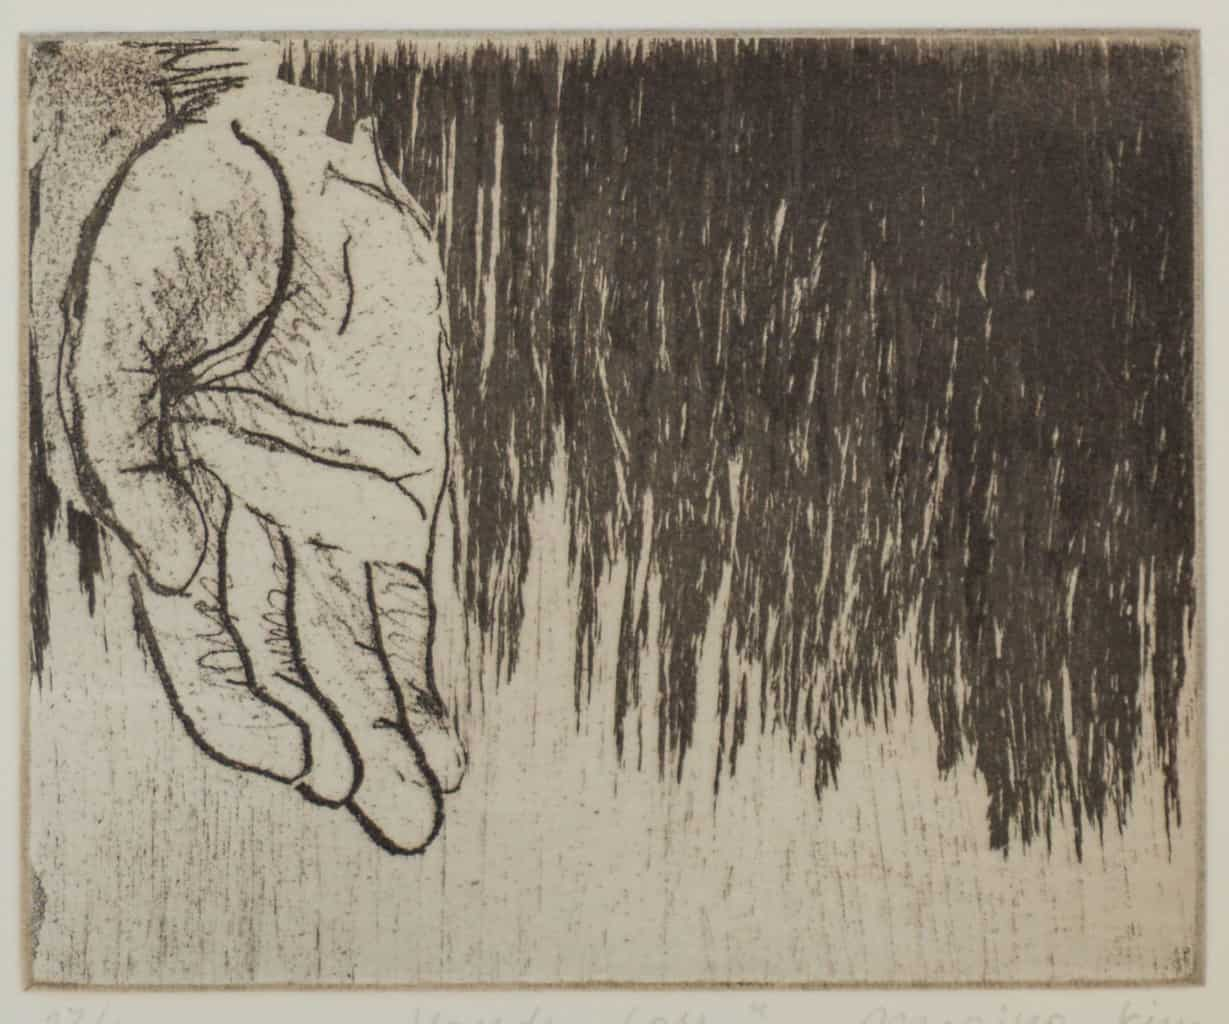 """""""Loss"""" - image from the """"Hands"""" series featuring various stances of gesturing hands. Original print etching by painter-printmaker Marina Kim"""